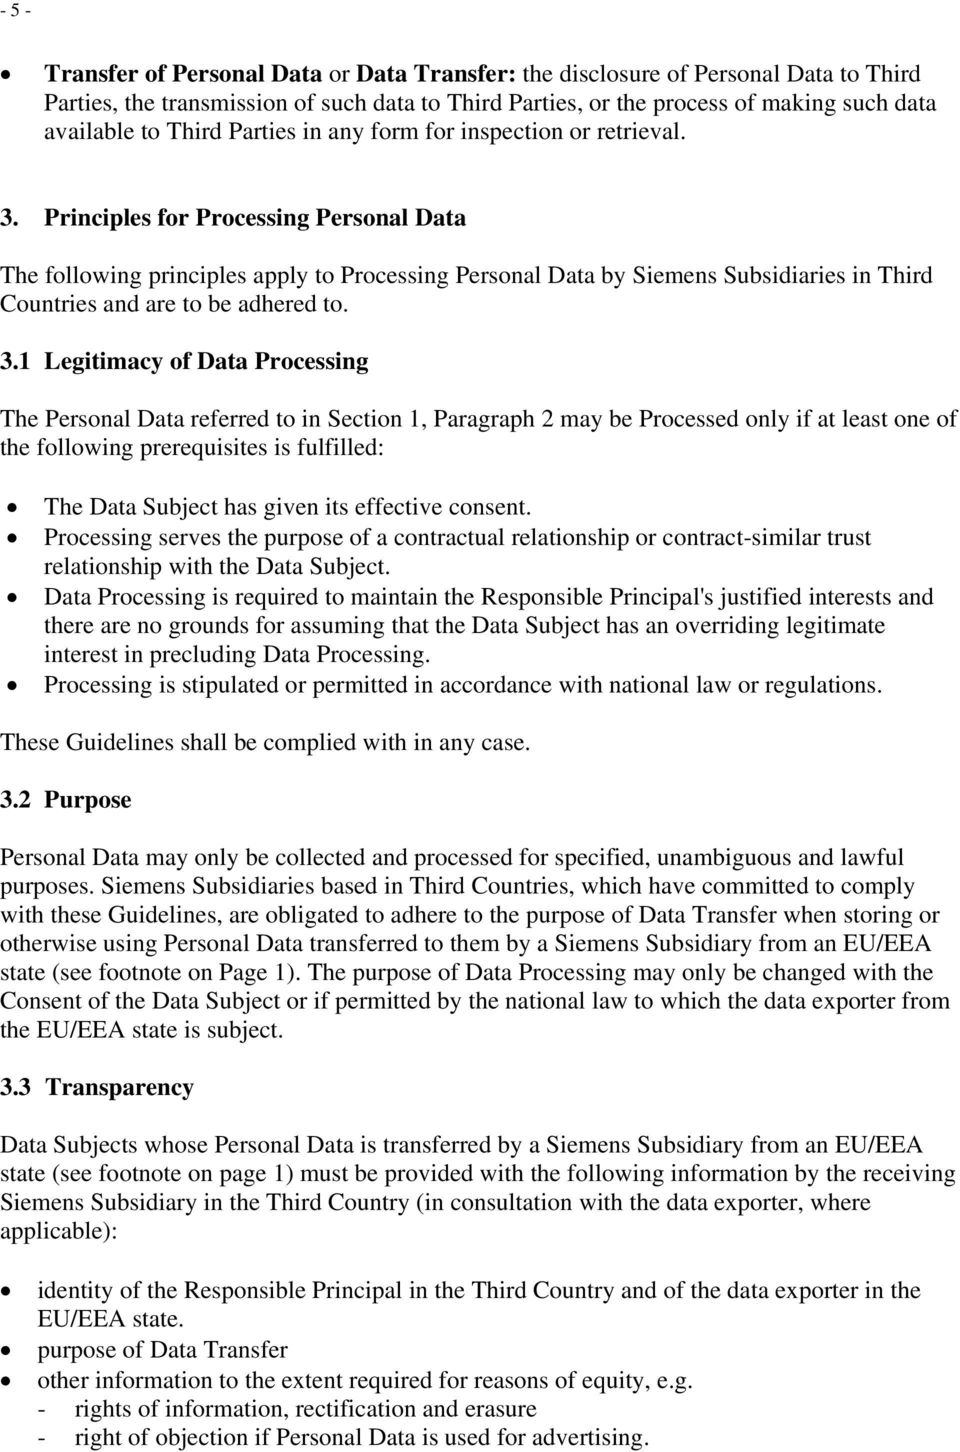 Principles for Processing Personal Data The following principles apply to Processing Personal Data by Siemens Subsidiaries in Third Countries and are to be adhered to. 3.